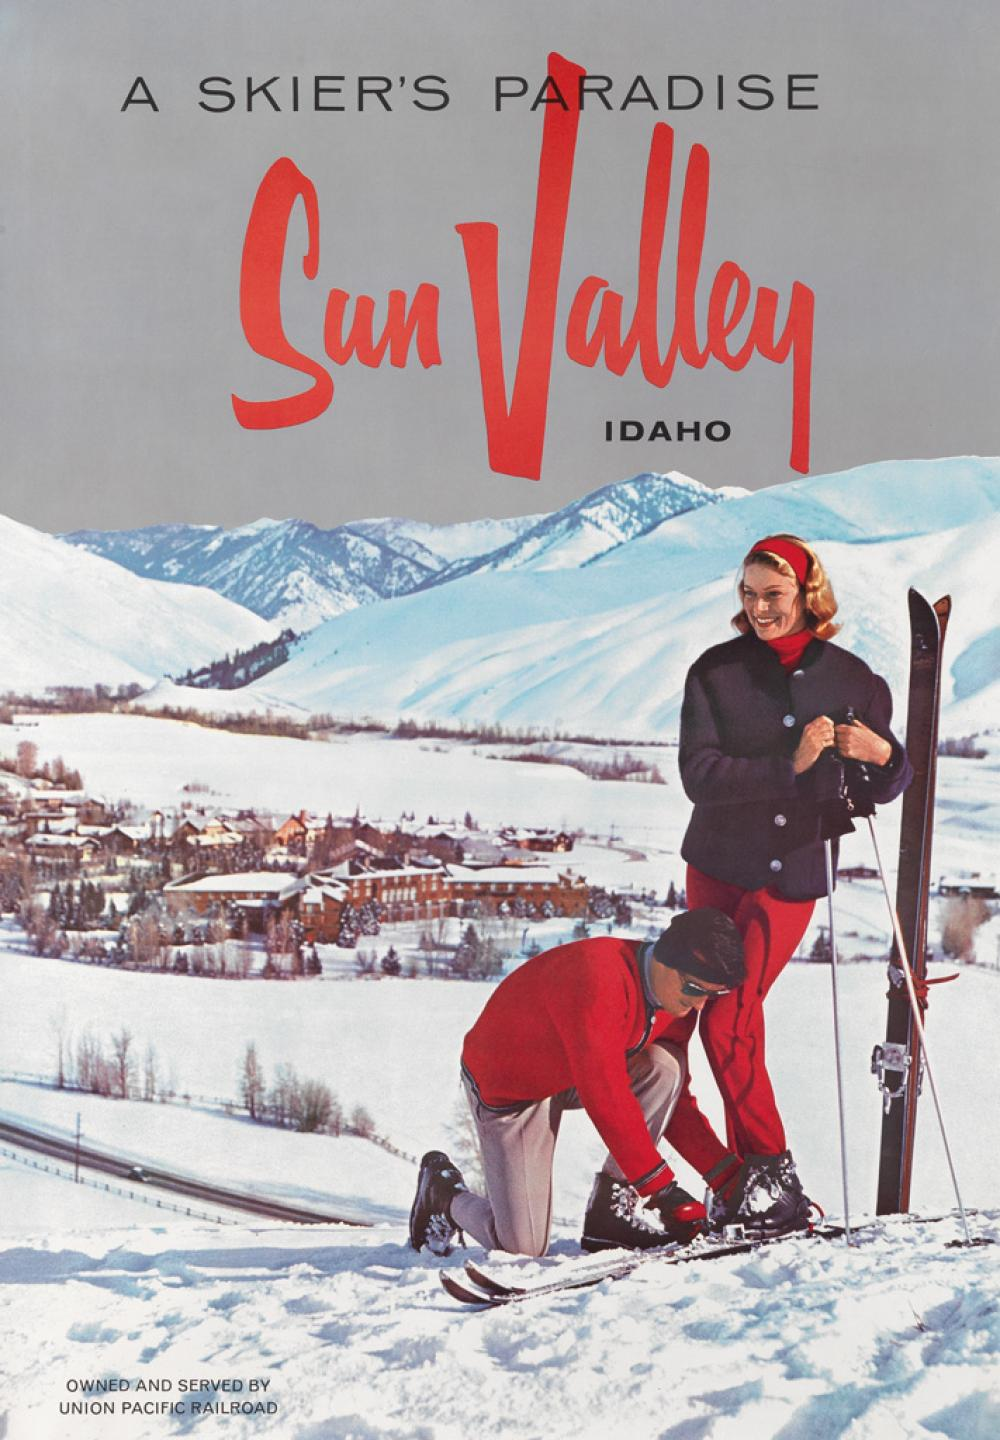 DESIGNER UNKNOWN. A SKIER'S PARADISE / SUN VALLEY IDAHO. Circa 1950s. 34x24 inches, 88x63 cm.